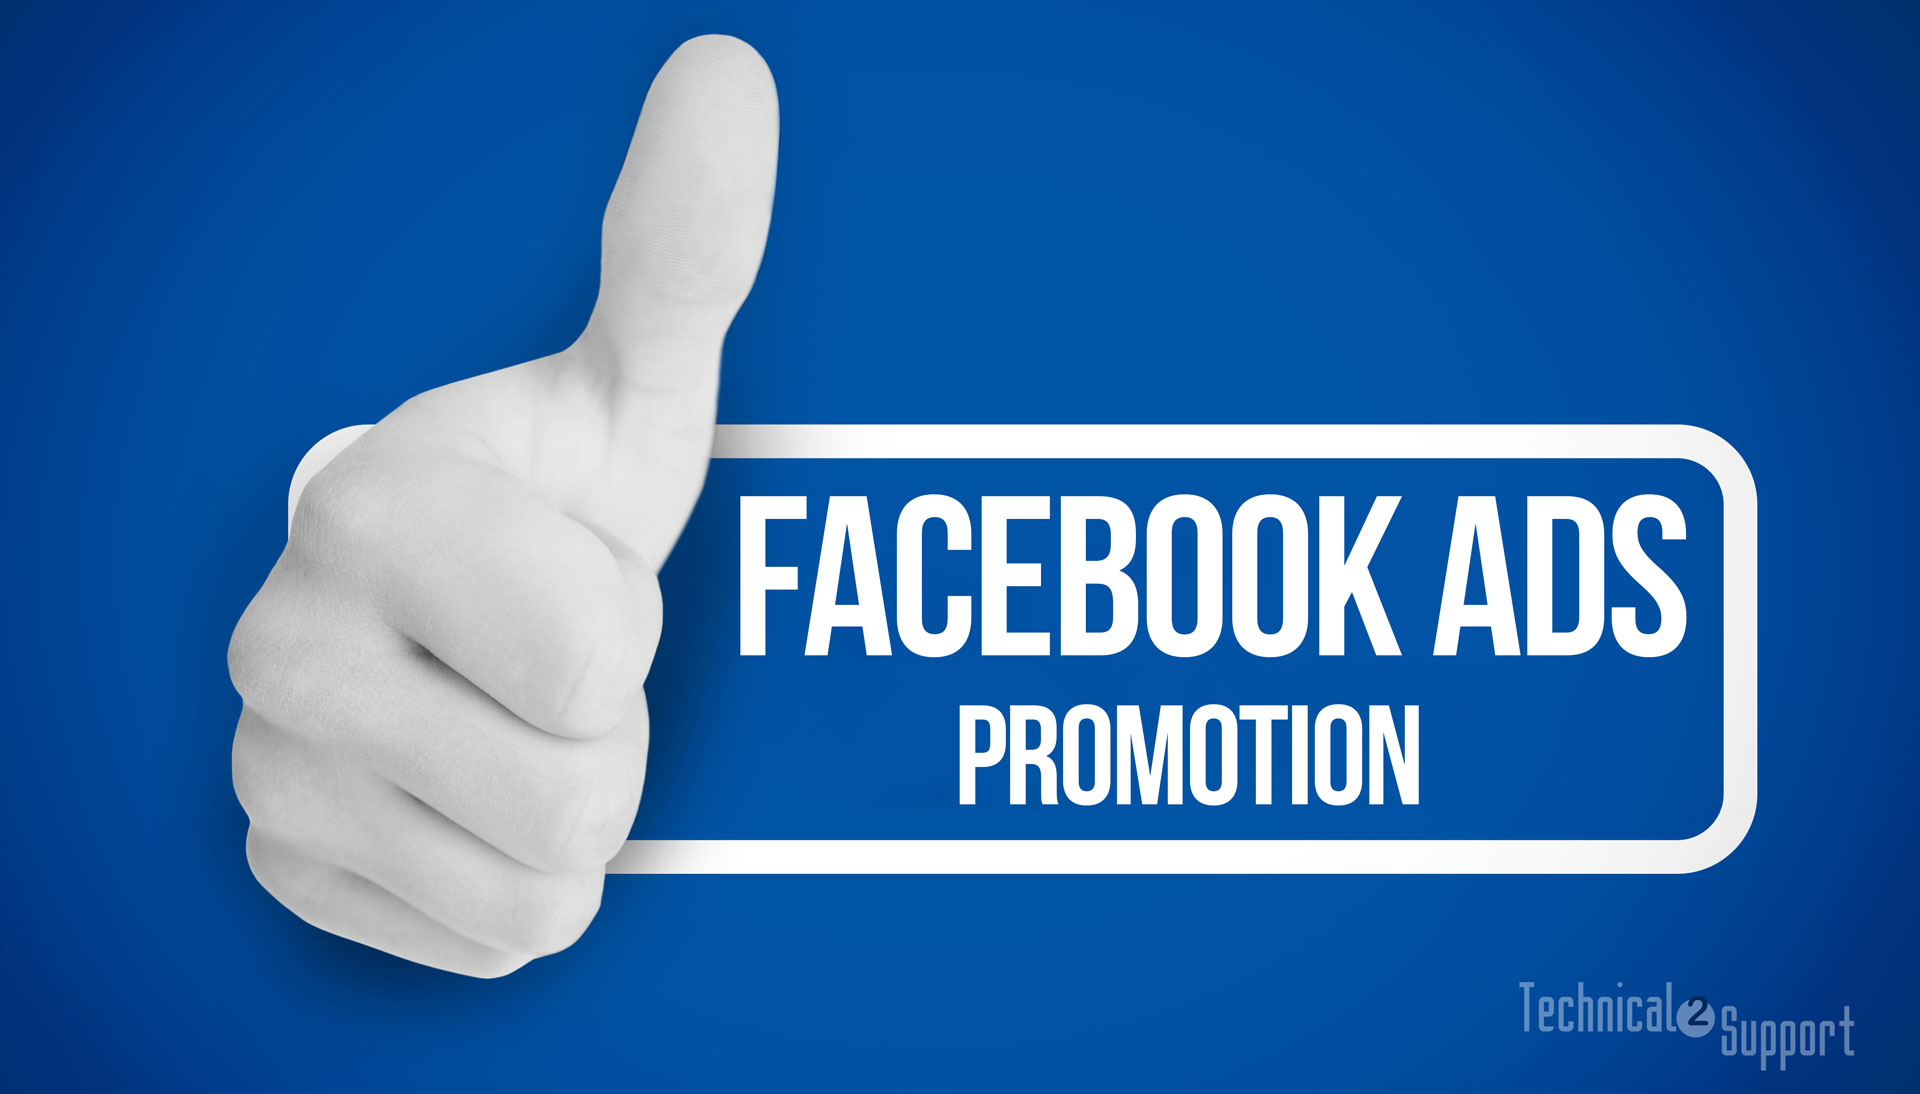 Facebook Advertising: I want more customers